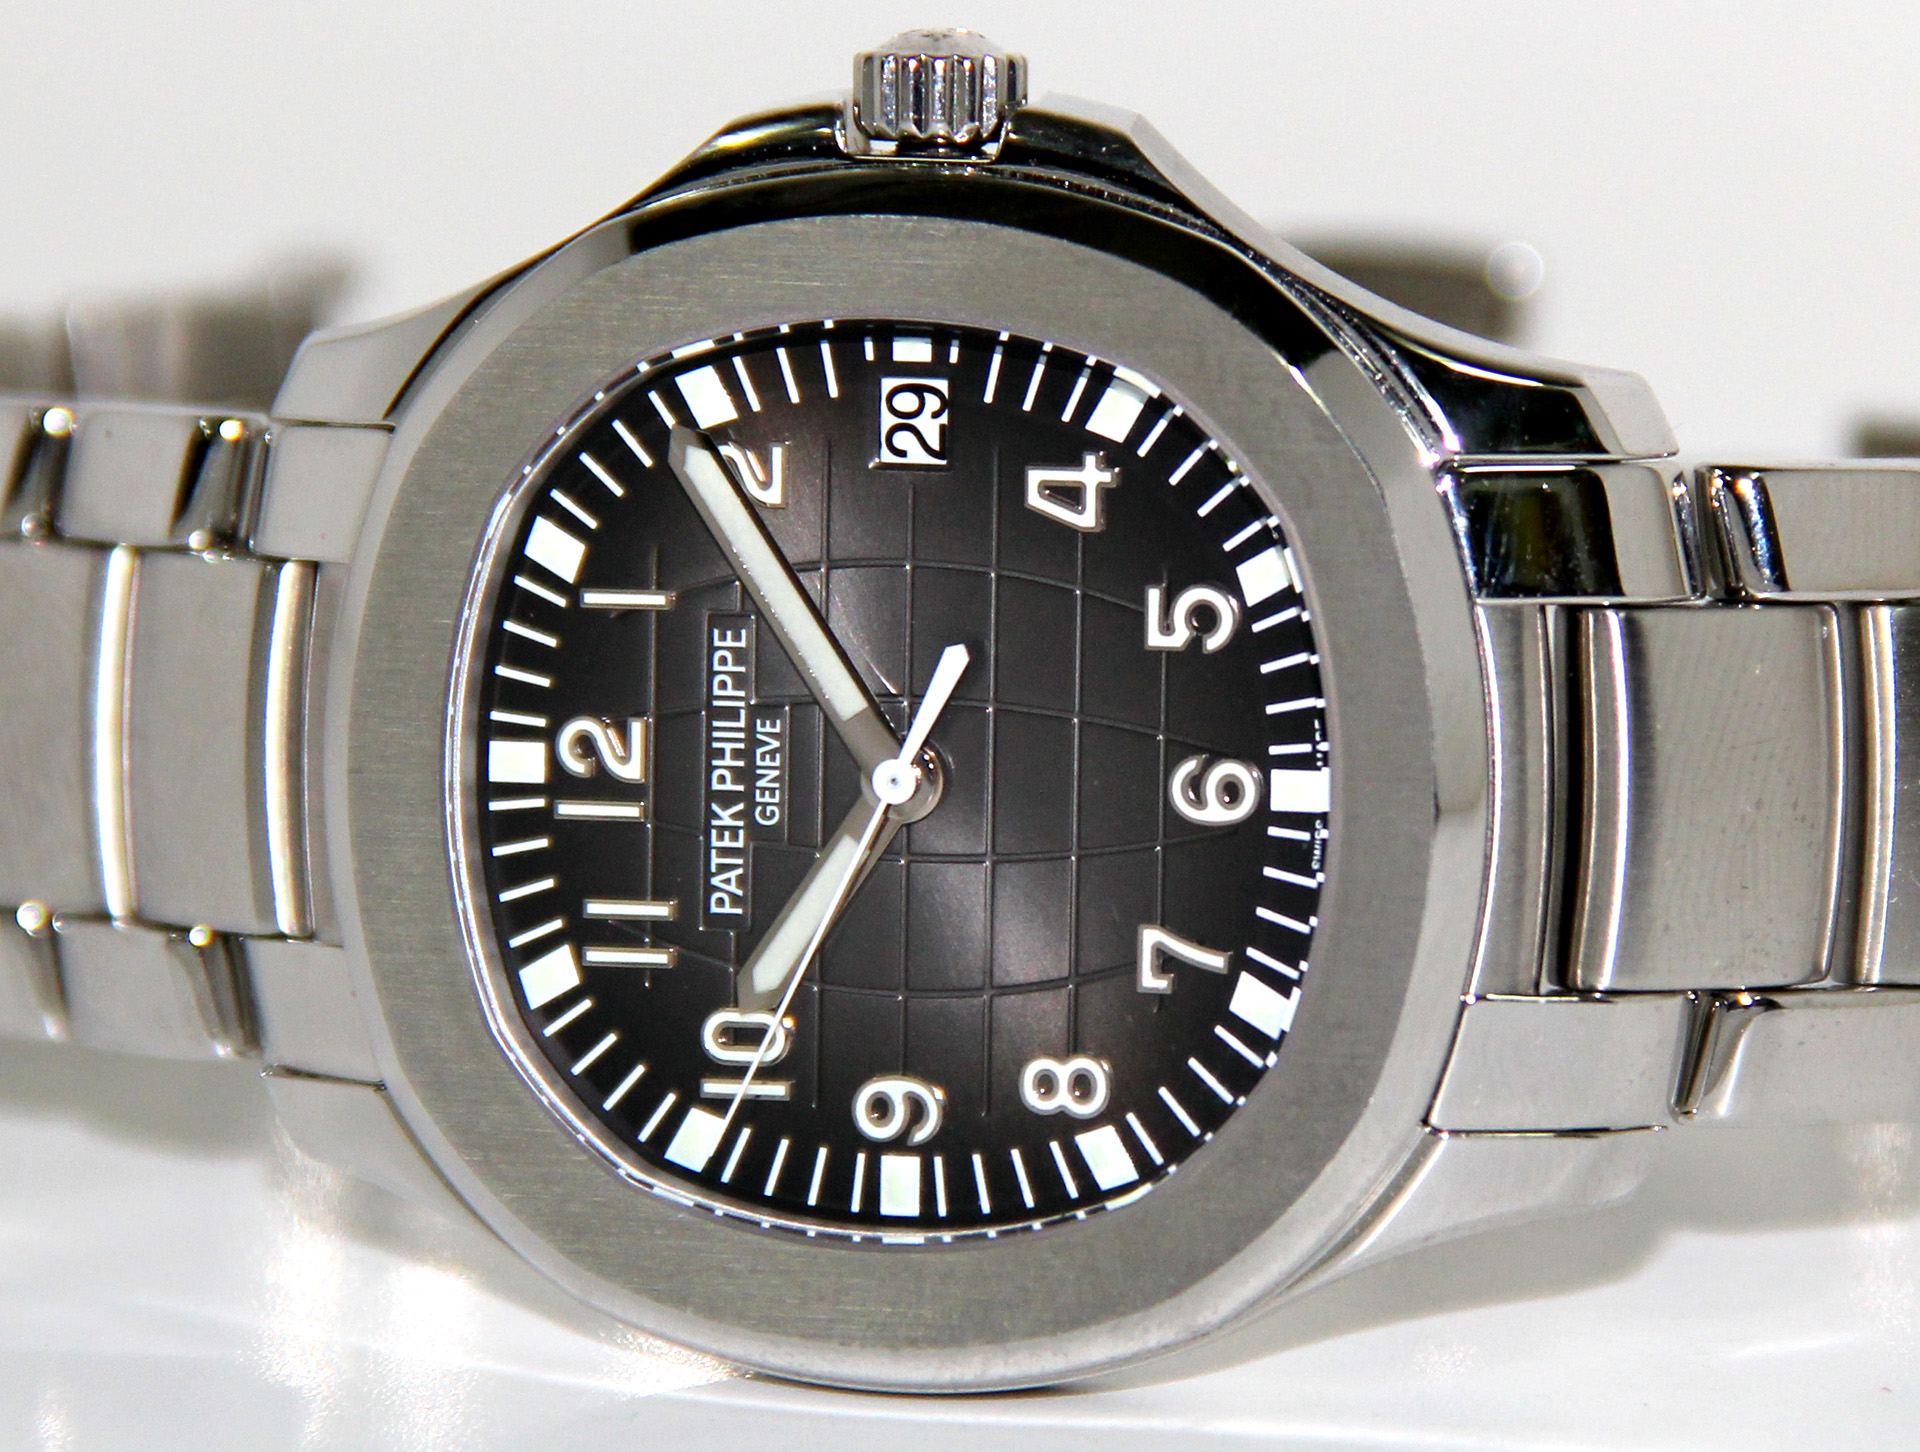 aquanaut ref 5167 1a 001 limited editions